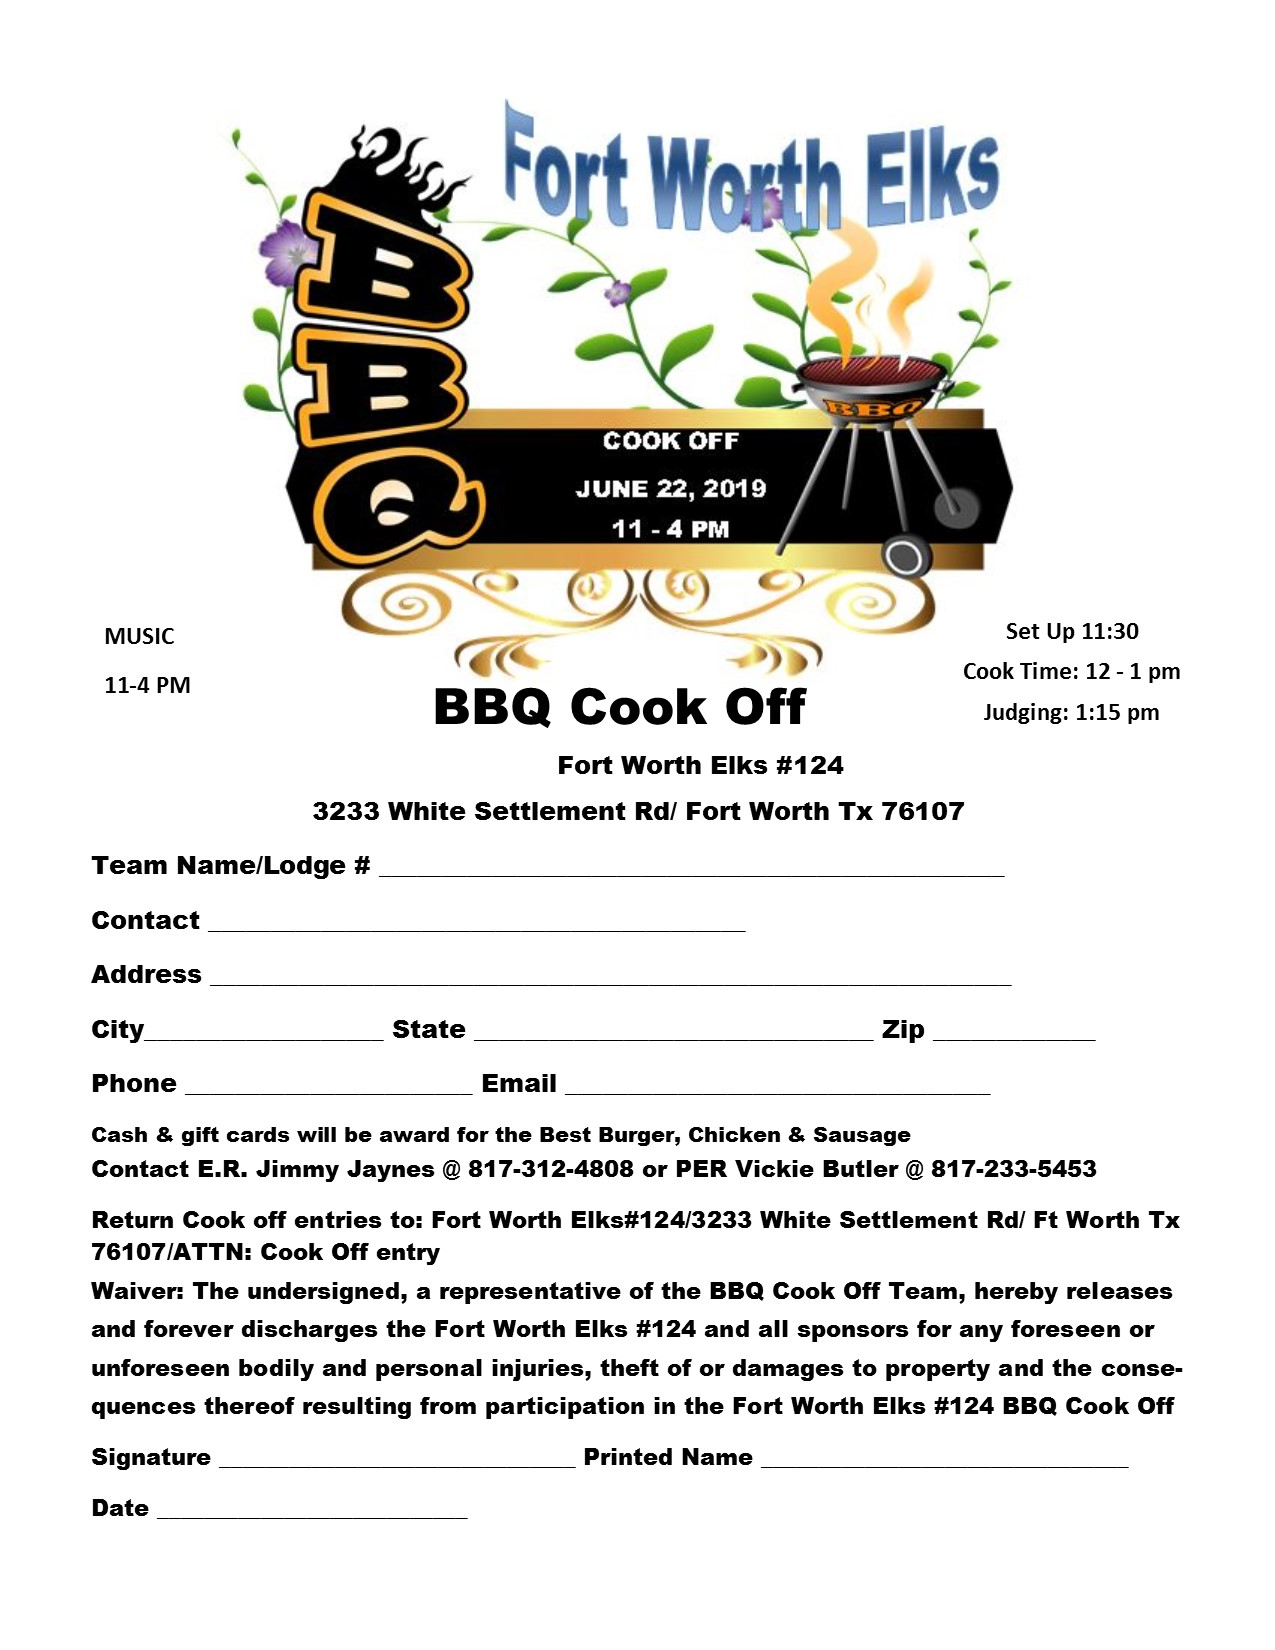 Entry form cook off 6-22-19.jpg